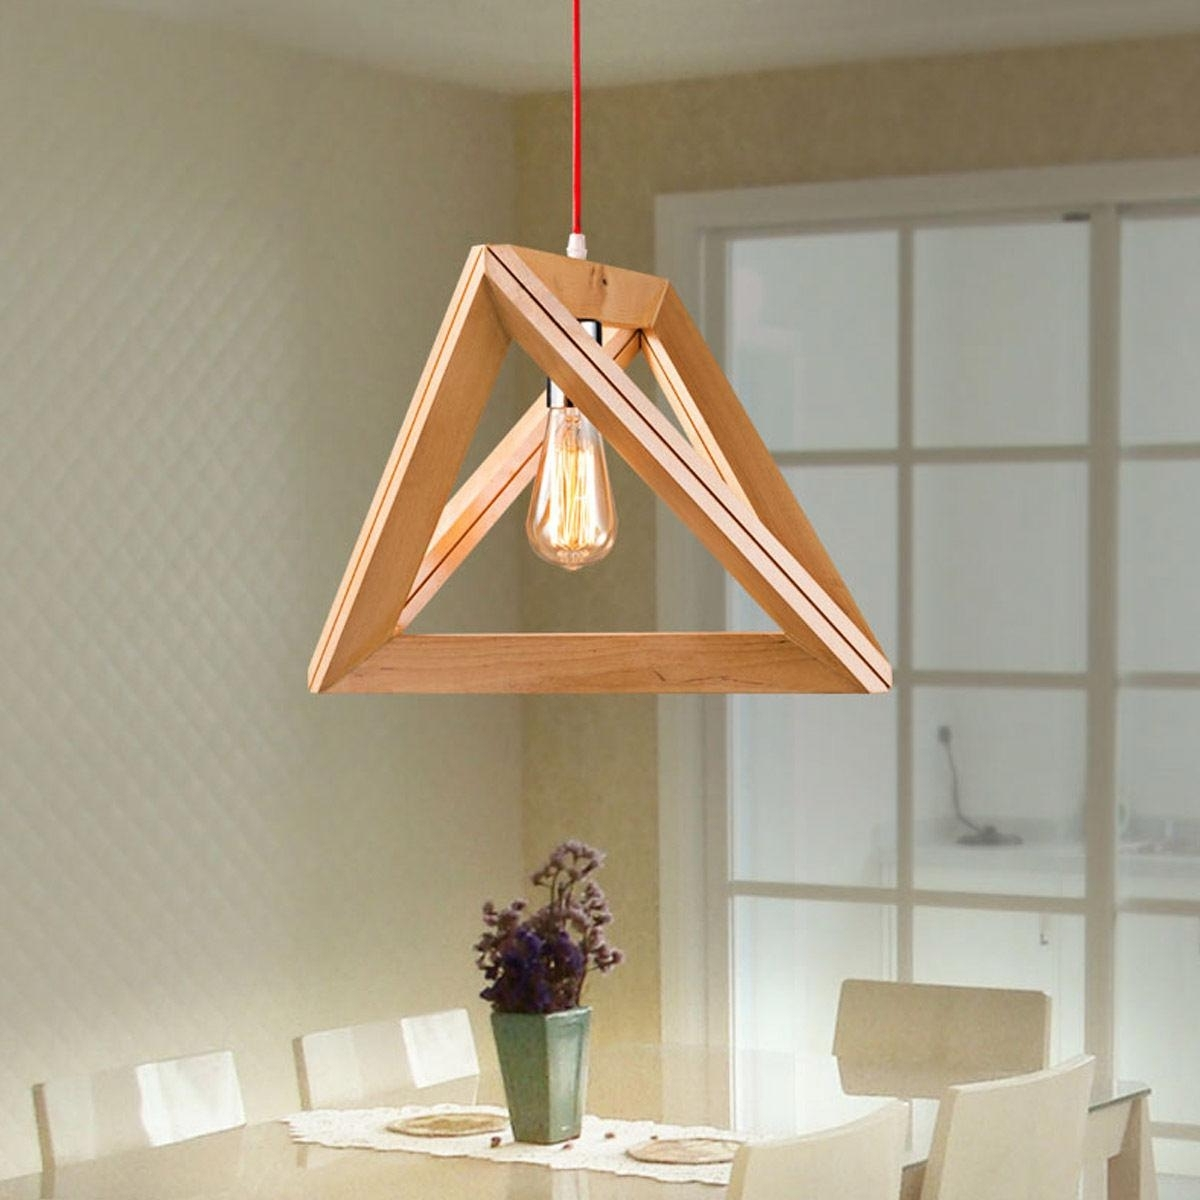 Preferred New Modern Art Wooden Ceiling Light Pendant Lamp Lighting Light Wood Pertaining To Wooden Chandeliers (View 12 of 20)